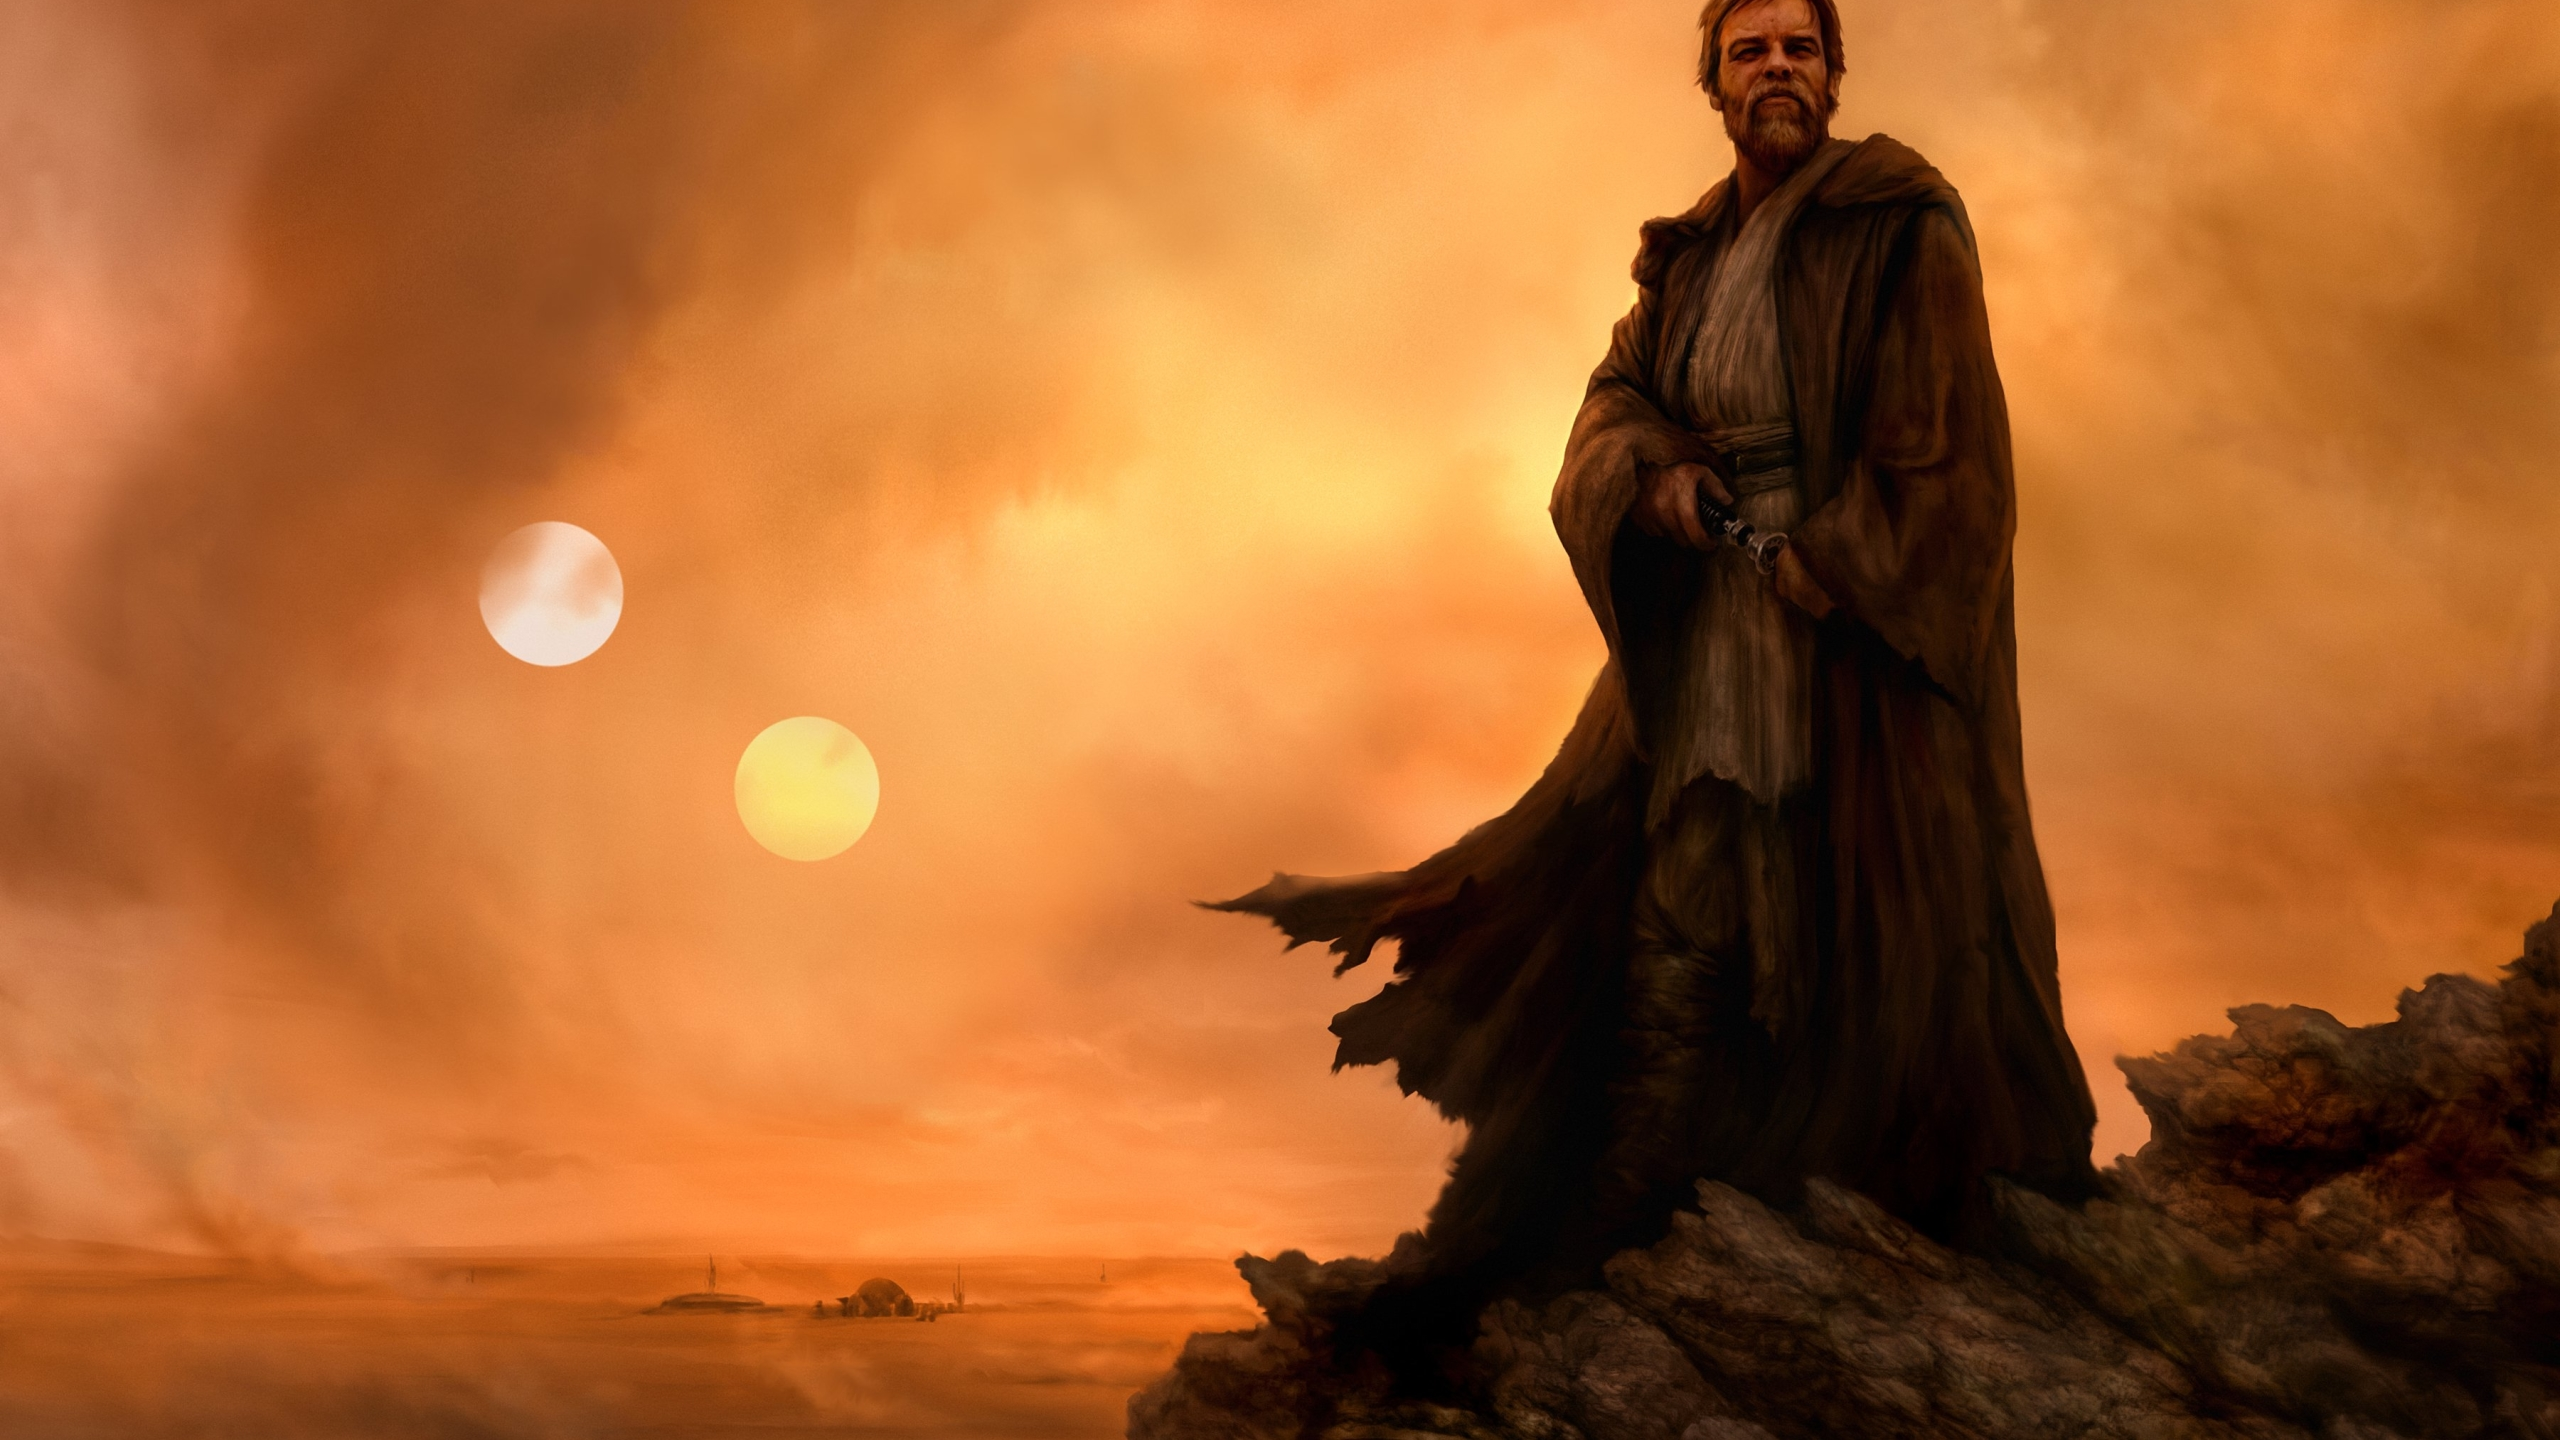 2560x1440 Star Wars Obi Wan Artwork 1440p Resolution Wallpaper Hd Movies 4k Wallpapers Images Photos And Background